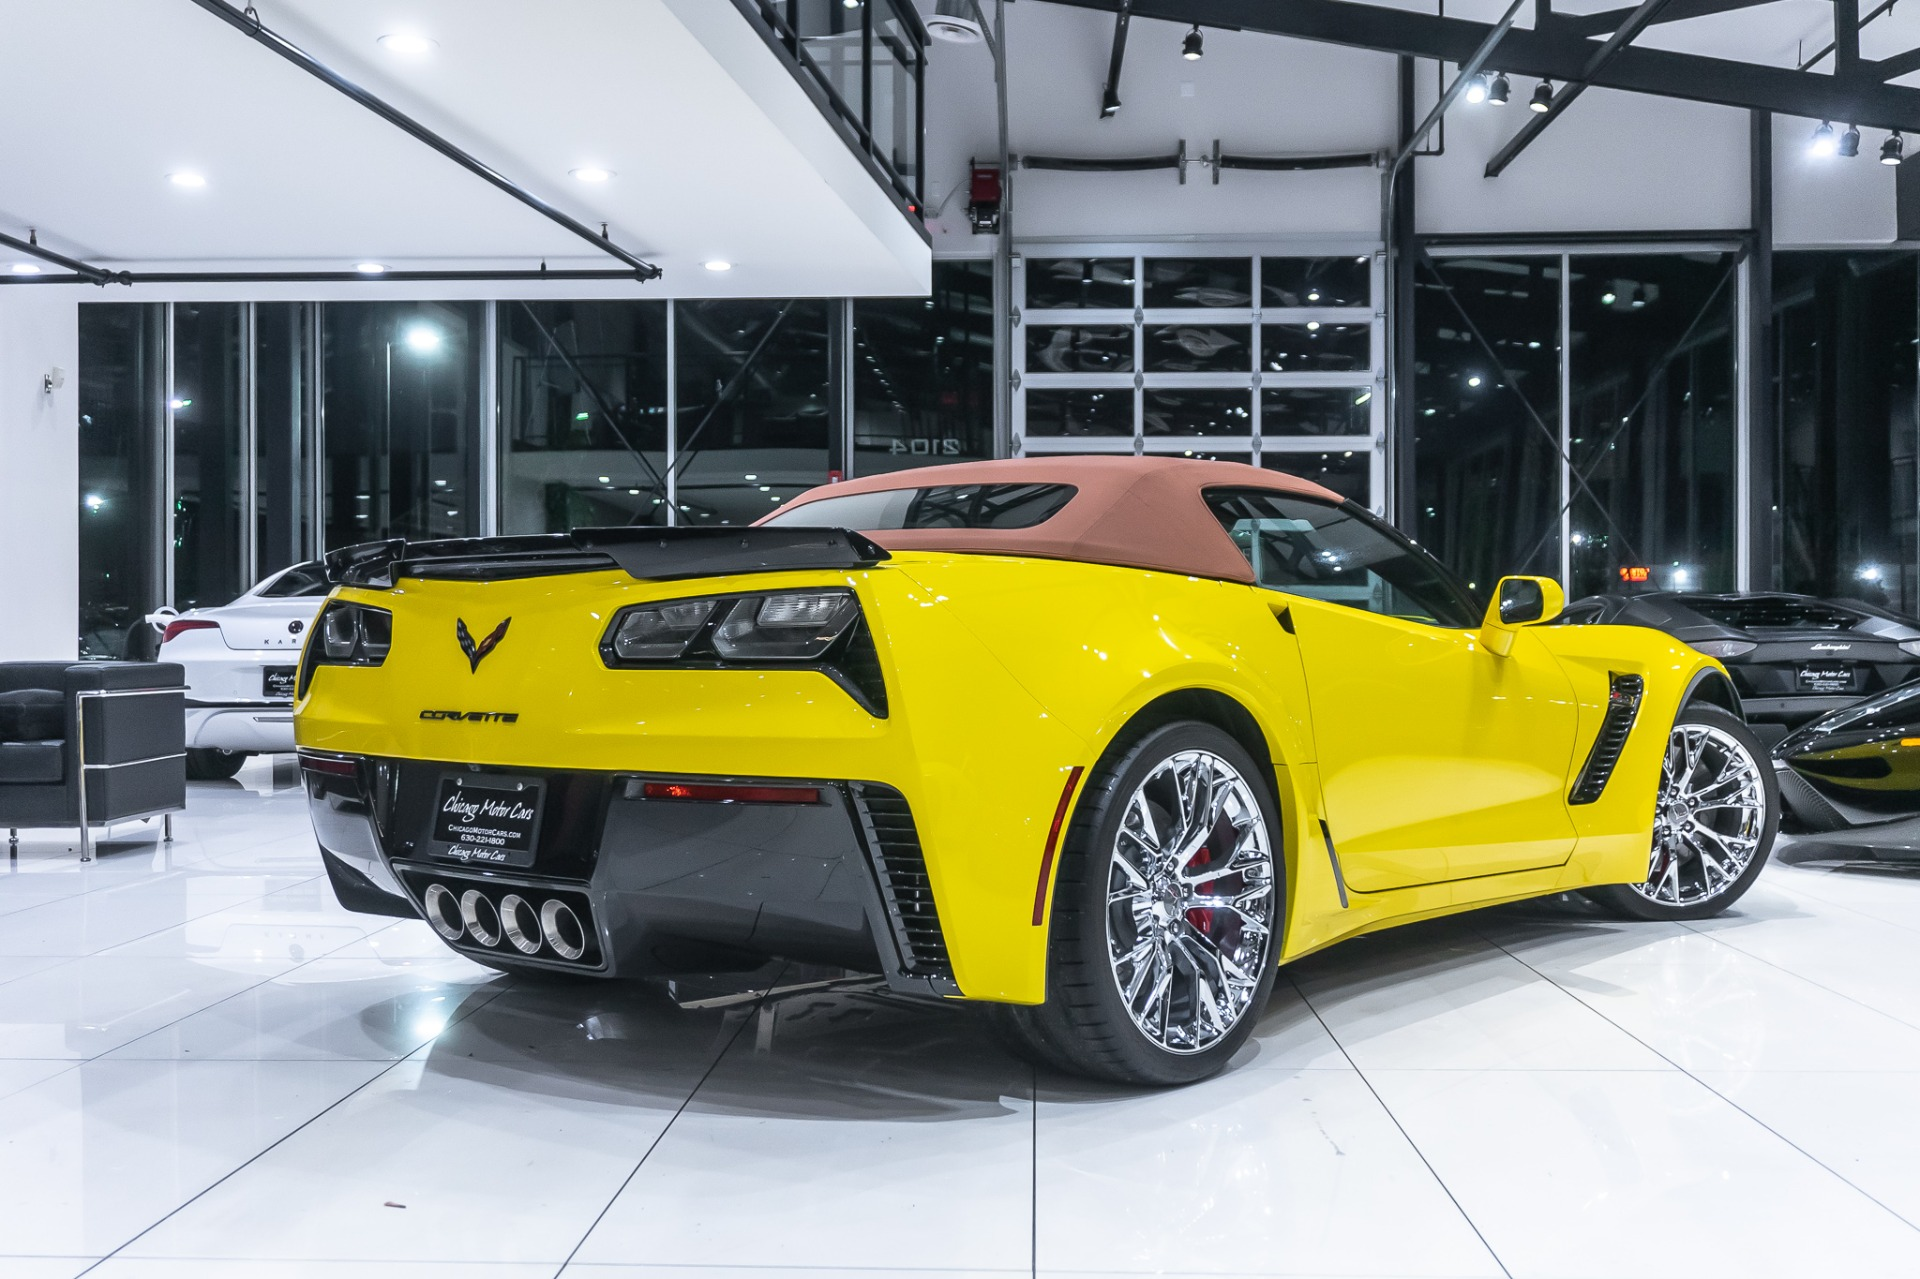 Used-2016-Chevrolet-Corvette-Z06-Convertible-3LZ-7-Speed-Manual-Racing-Yellow-ONLY-1K-Miles